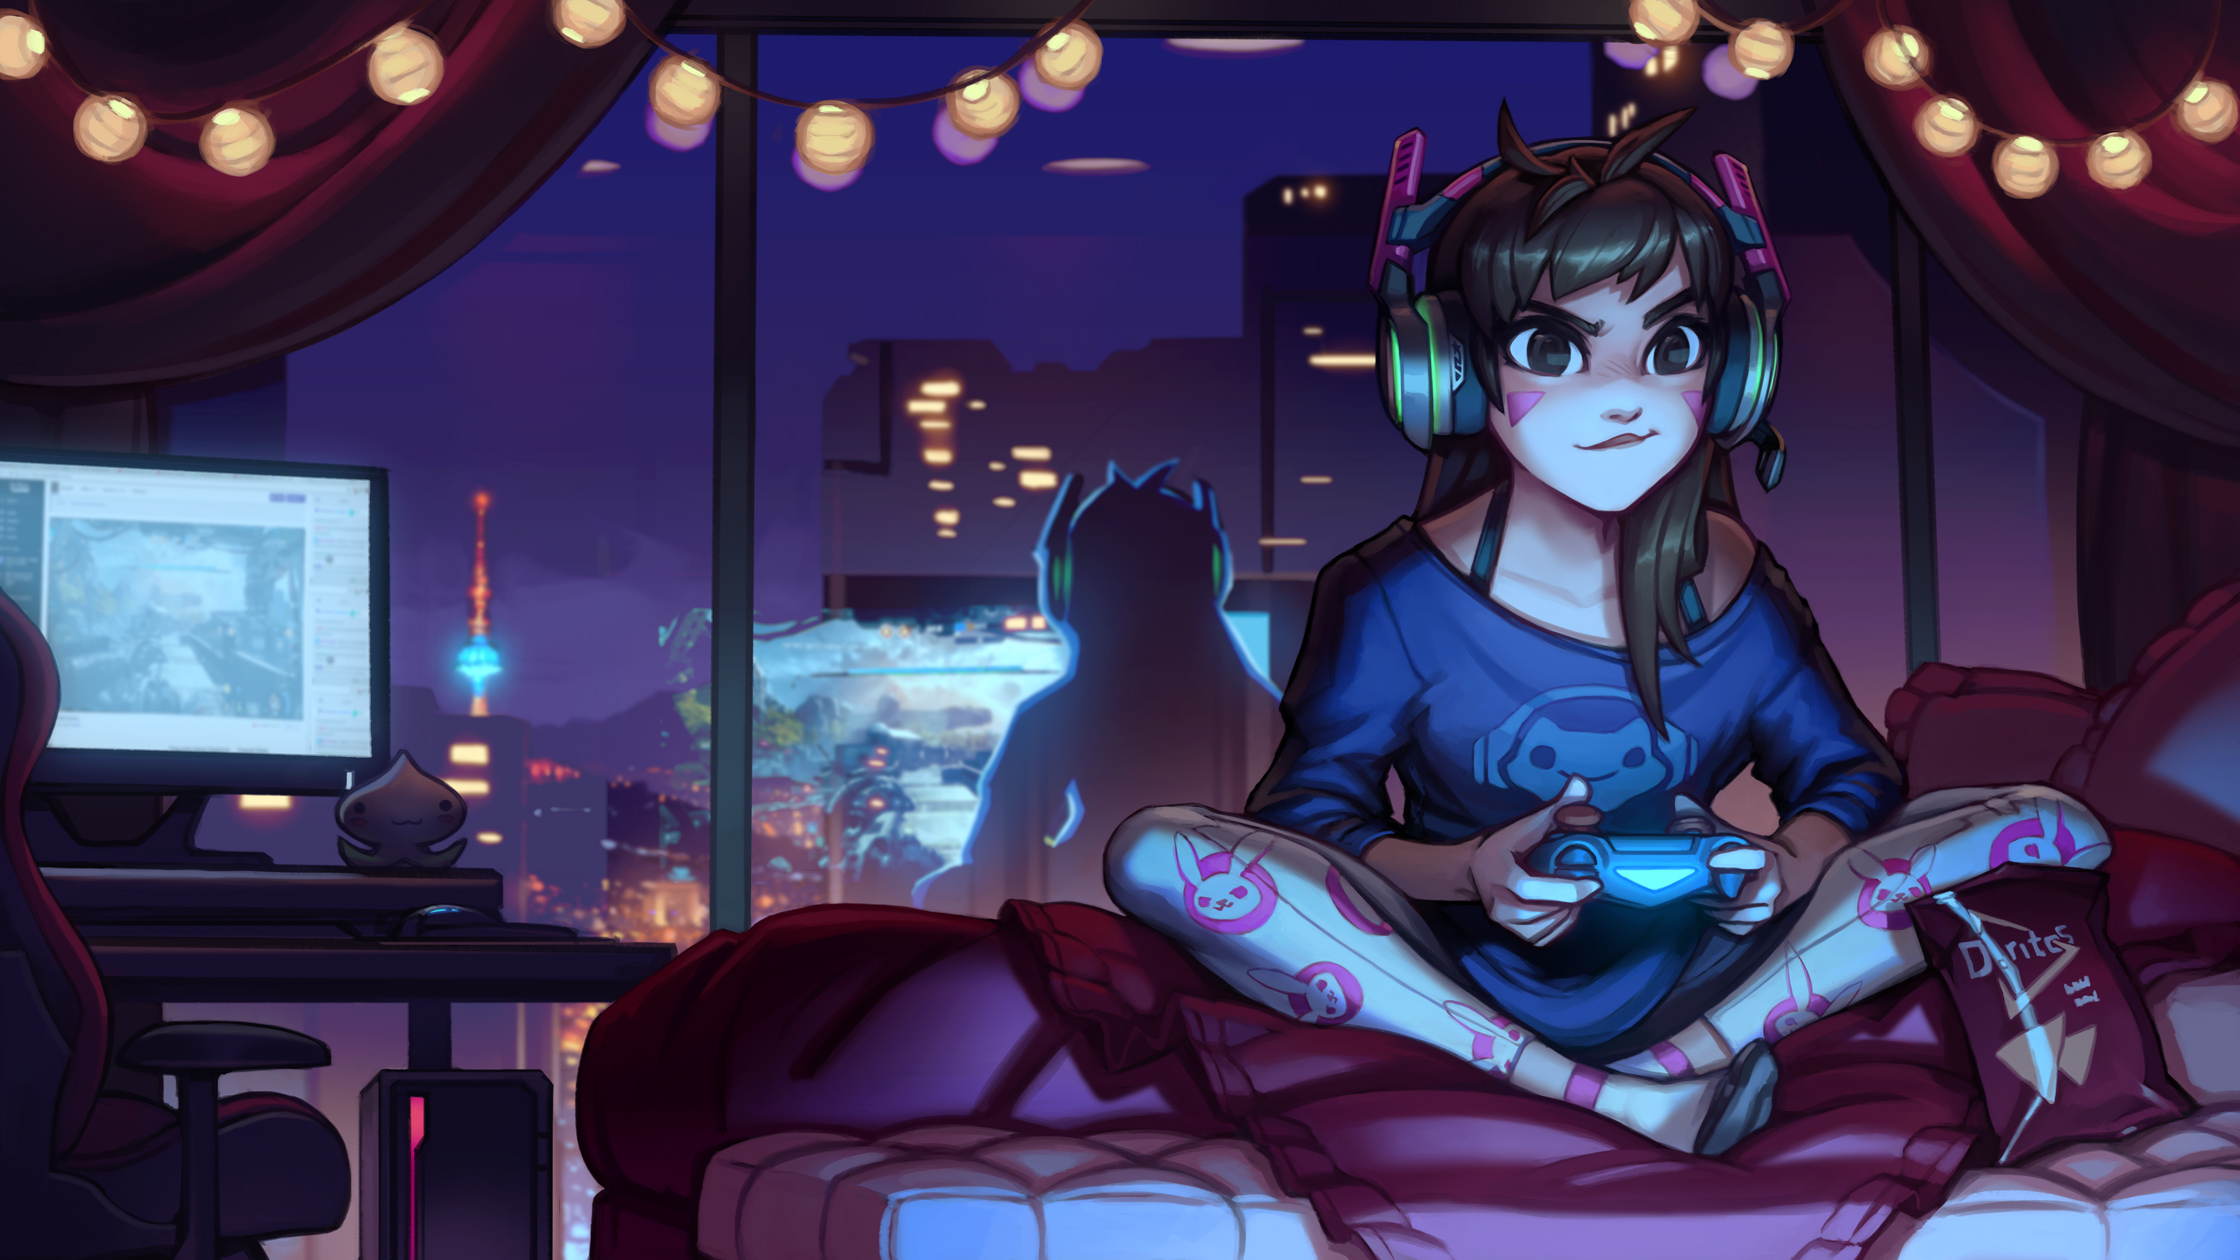 Casual D va - Youtube Process! by KNKL on DeviantArt